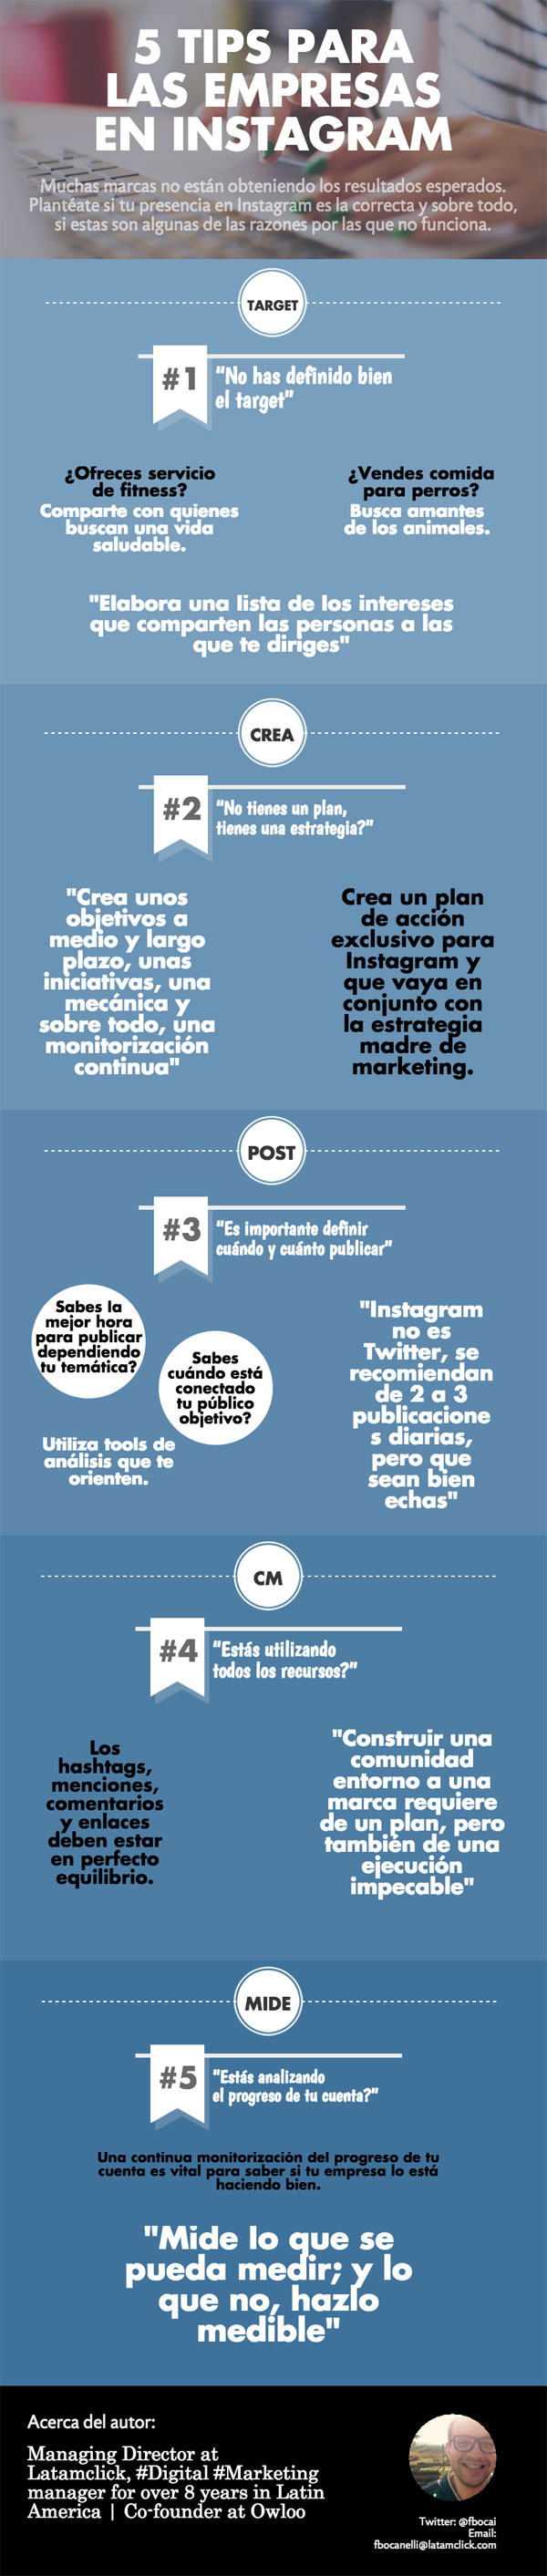 5-tips-para-que-una-empresa-mejore-su-marketing-en-Instagram_ch